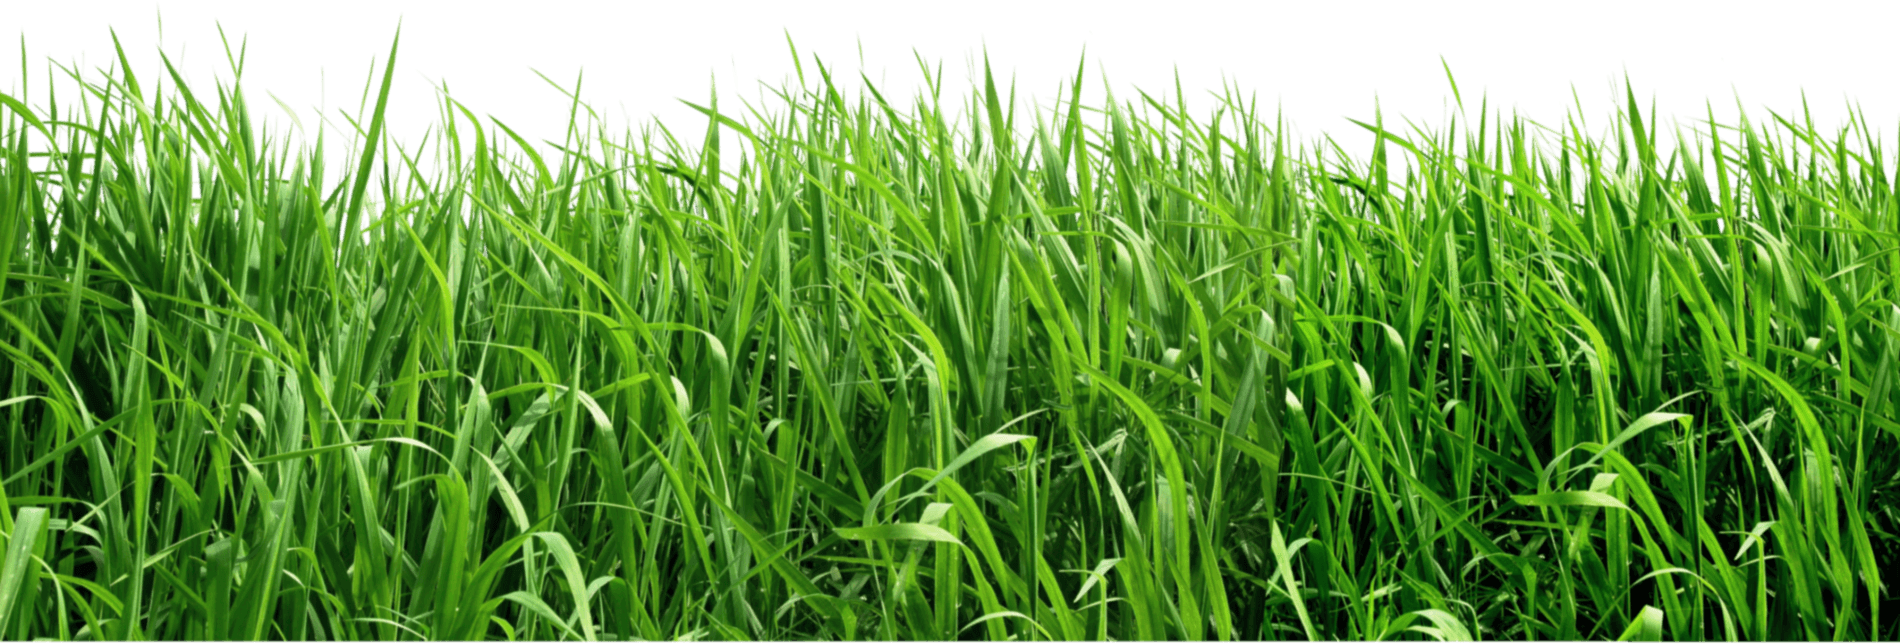 Football feild clipart picture black and white stock Grass Field Cliparts - Cliparts Zone picture black and white stock